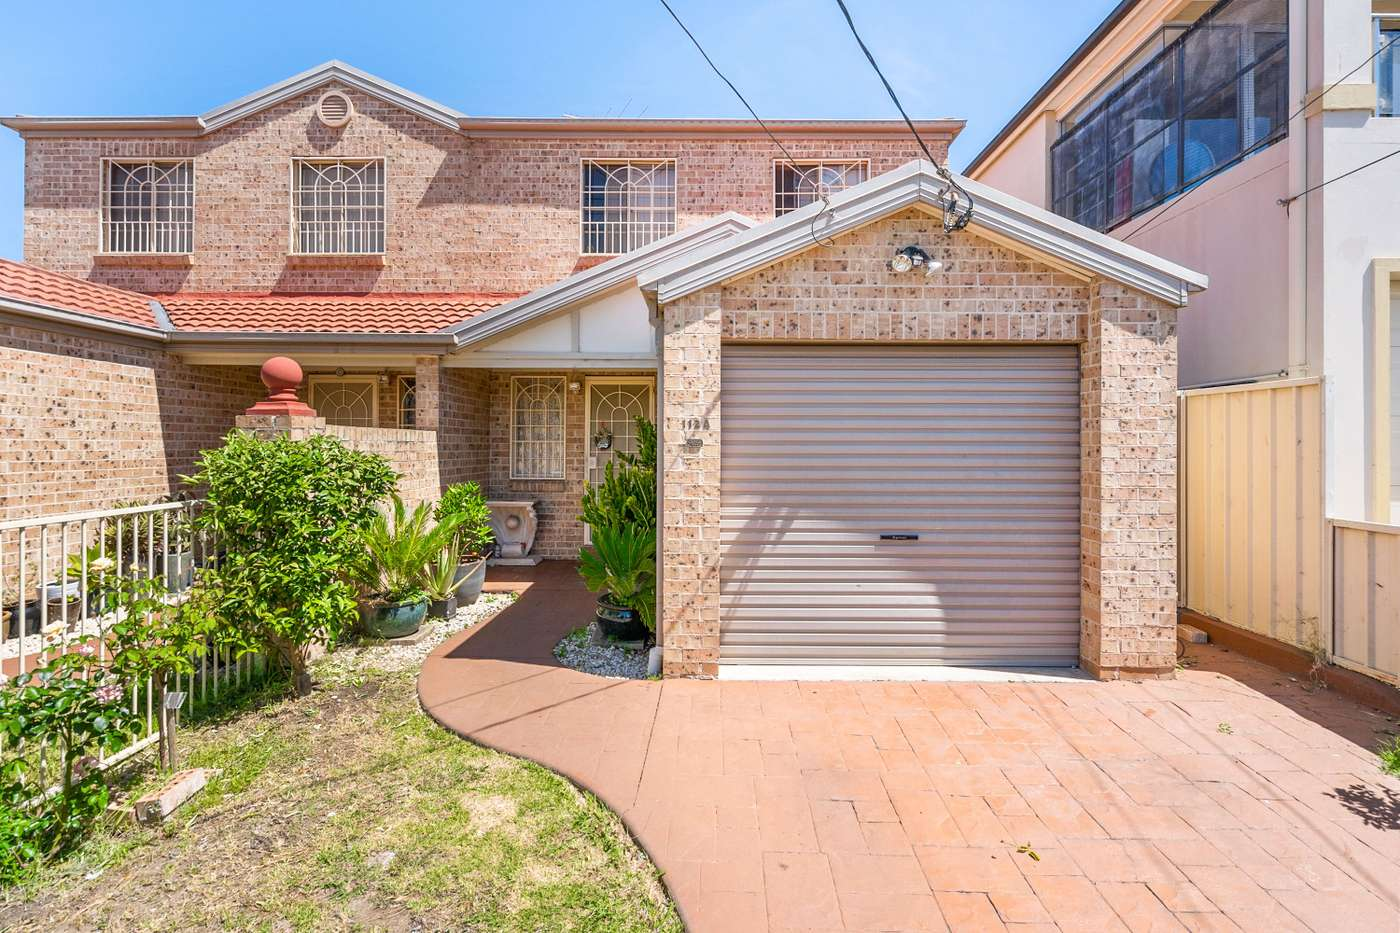 Main view of Homely house listing, 112A Kiora Street, Canley Heights, NSW 2166